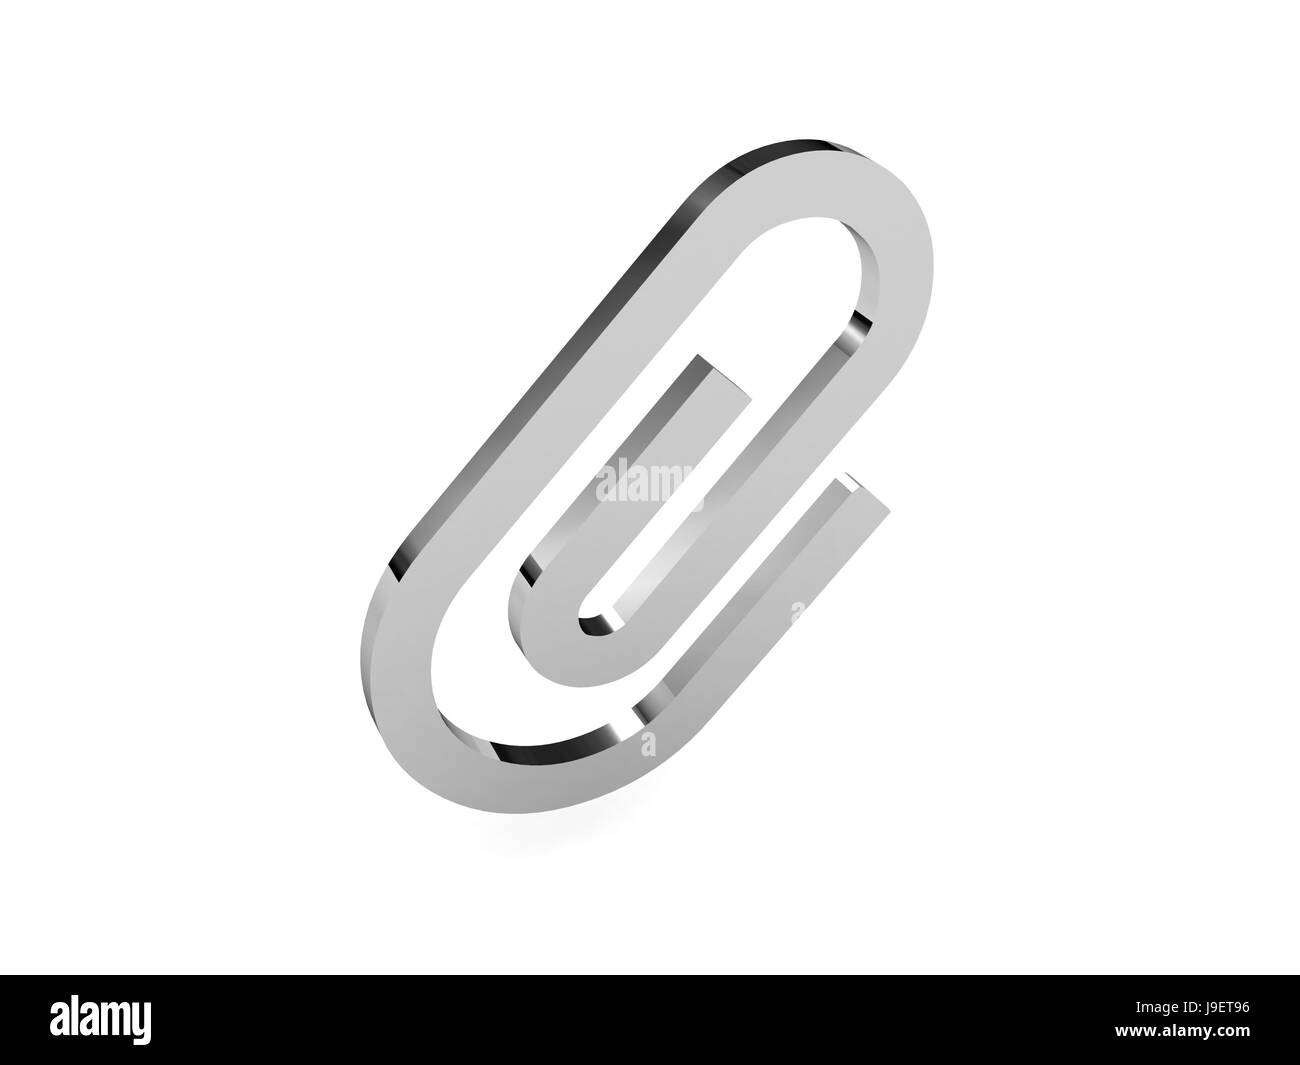 Clip icon over white background. Concept 3D illustration. - Stock Image